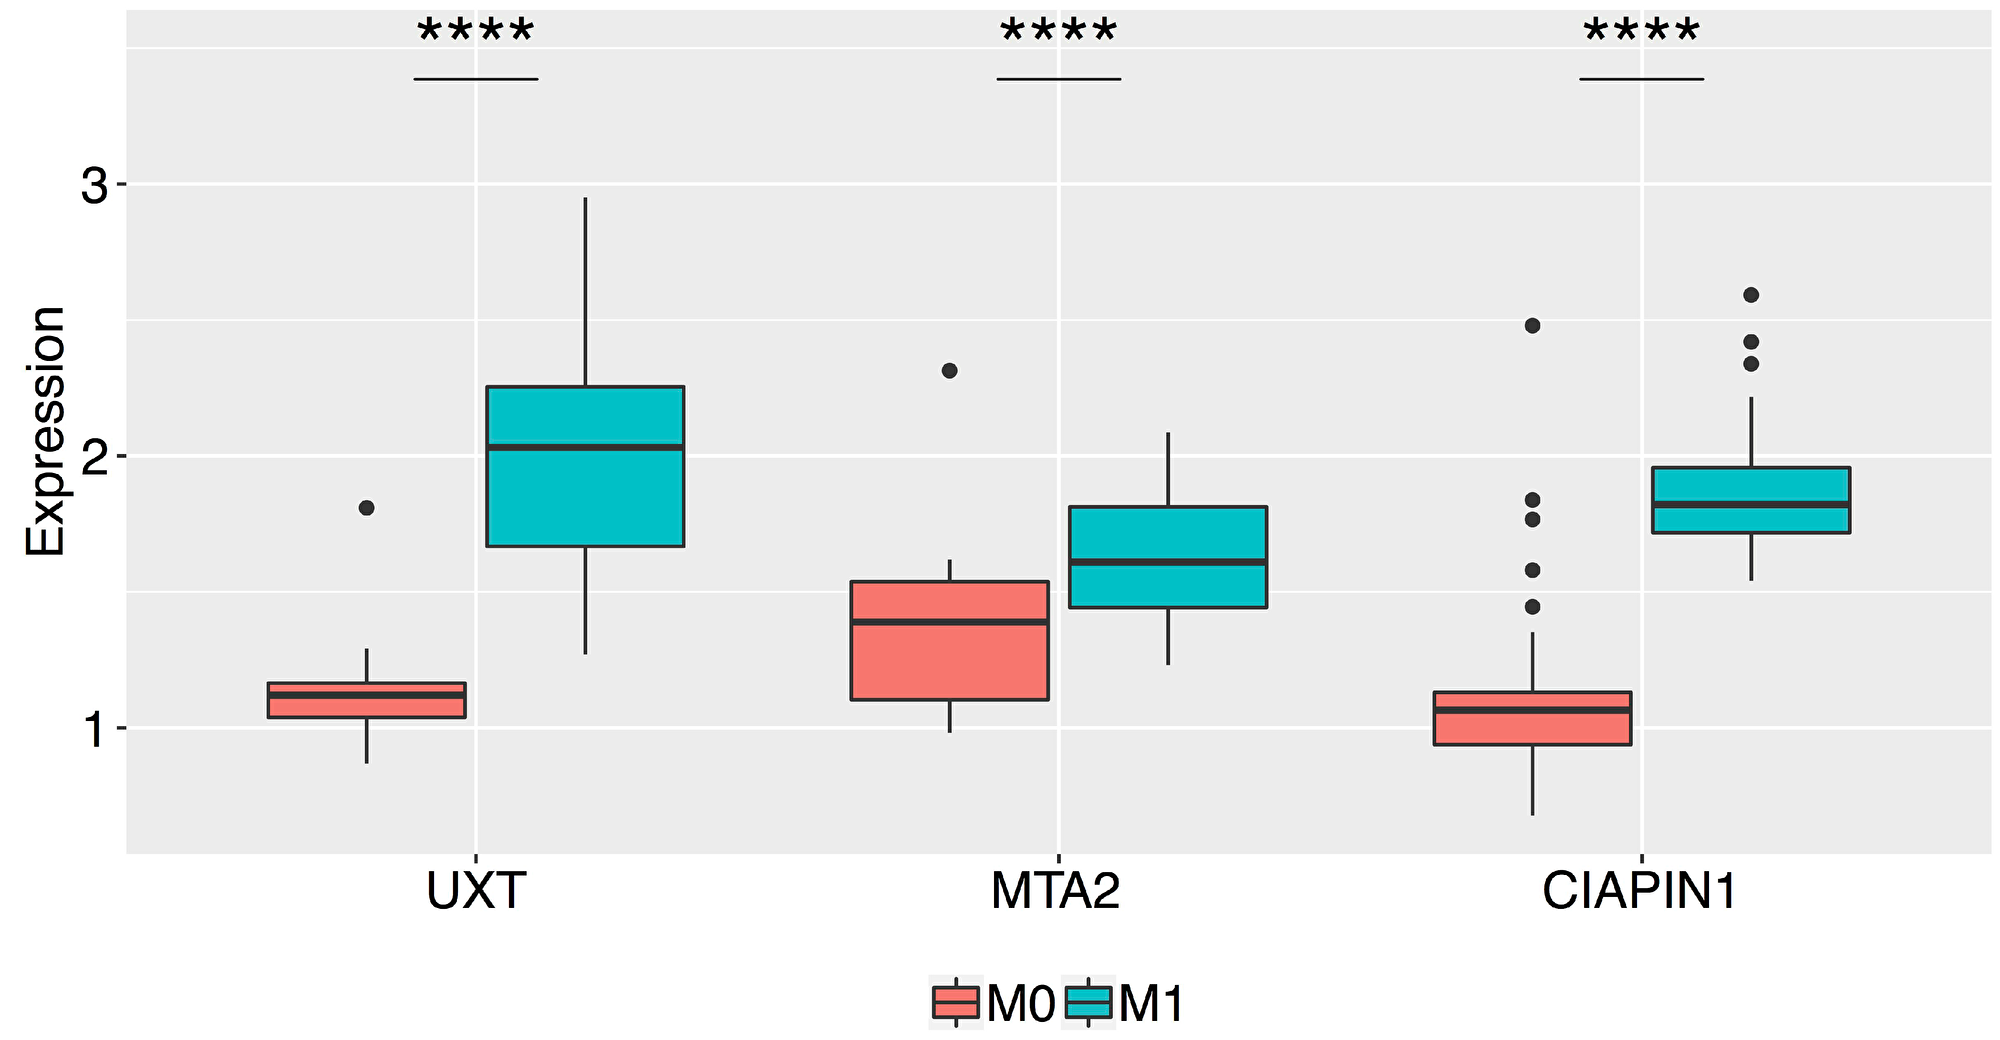 Box plots of the normalized relative expression of the UXT, MTA2, and CIAPIN1 proteins in the gastric tumor tissue of patients without metastasis (M0) and with metastasis (M1) (****P < 0.0001).